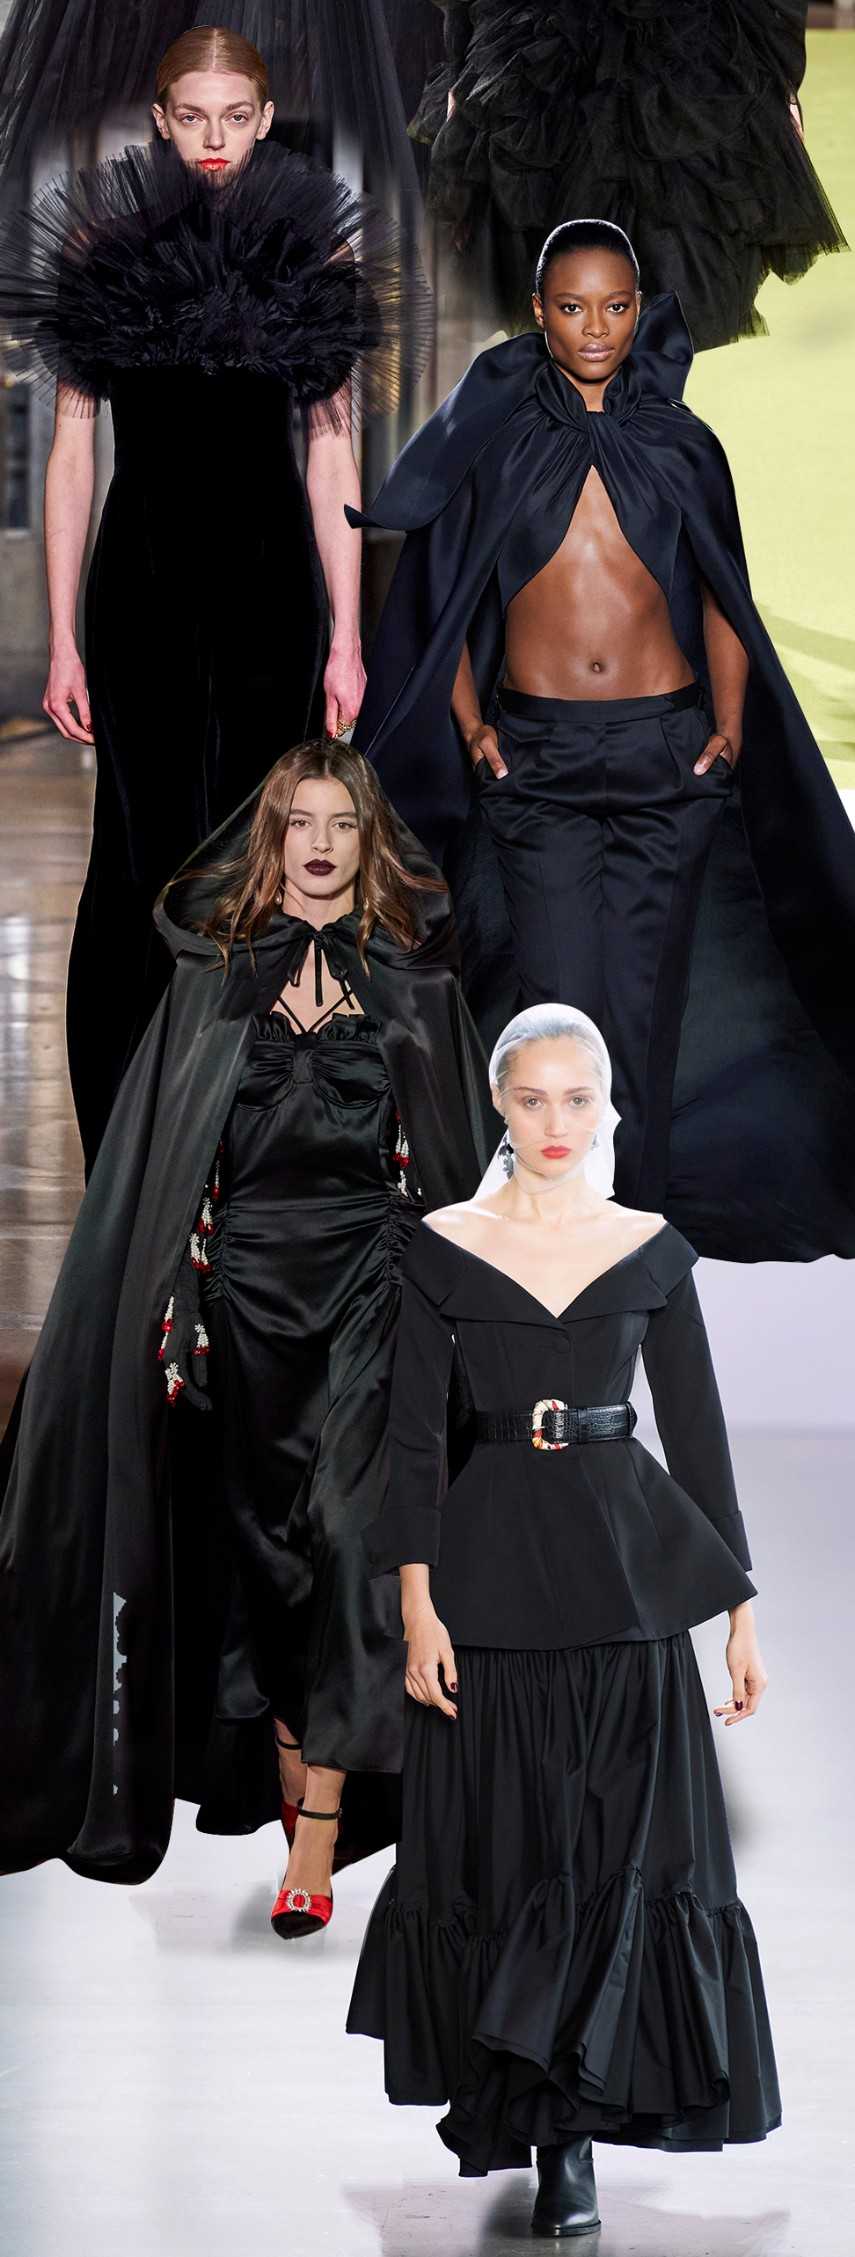 The Hottest And Most Coveted Fashion Trends From The Fall 2020 Runways (15) fashion trend The Hottest And Most Coveted Fashion Trends From The Fall 2020 Runways The Hottest And Most Coveted Fashion Trends From The Fall 2020 Runways 15